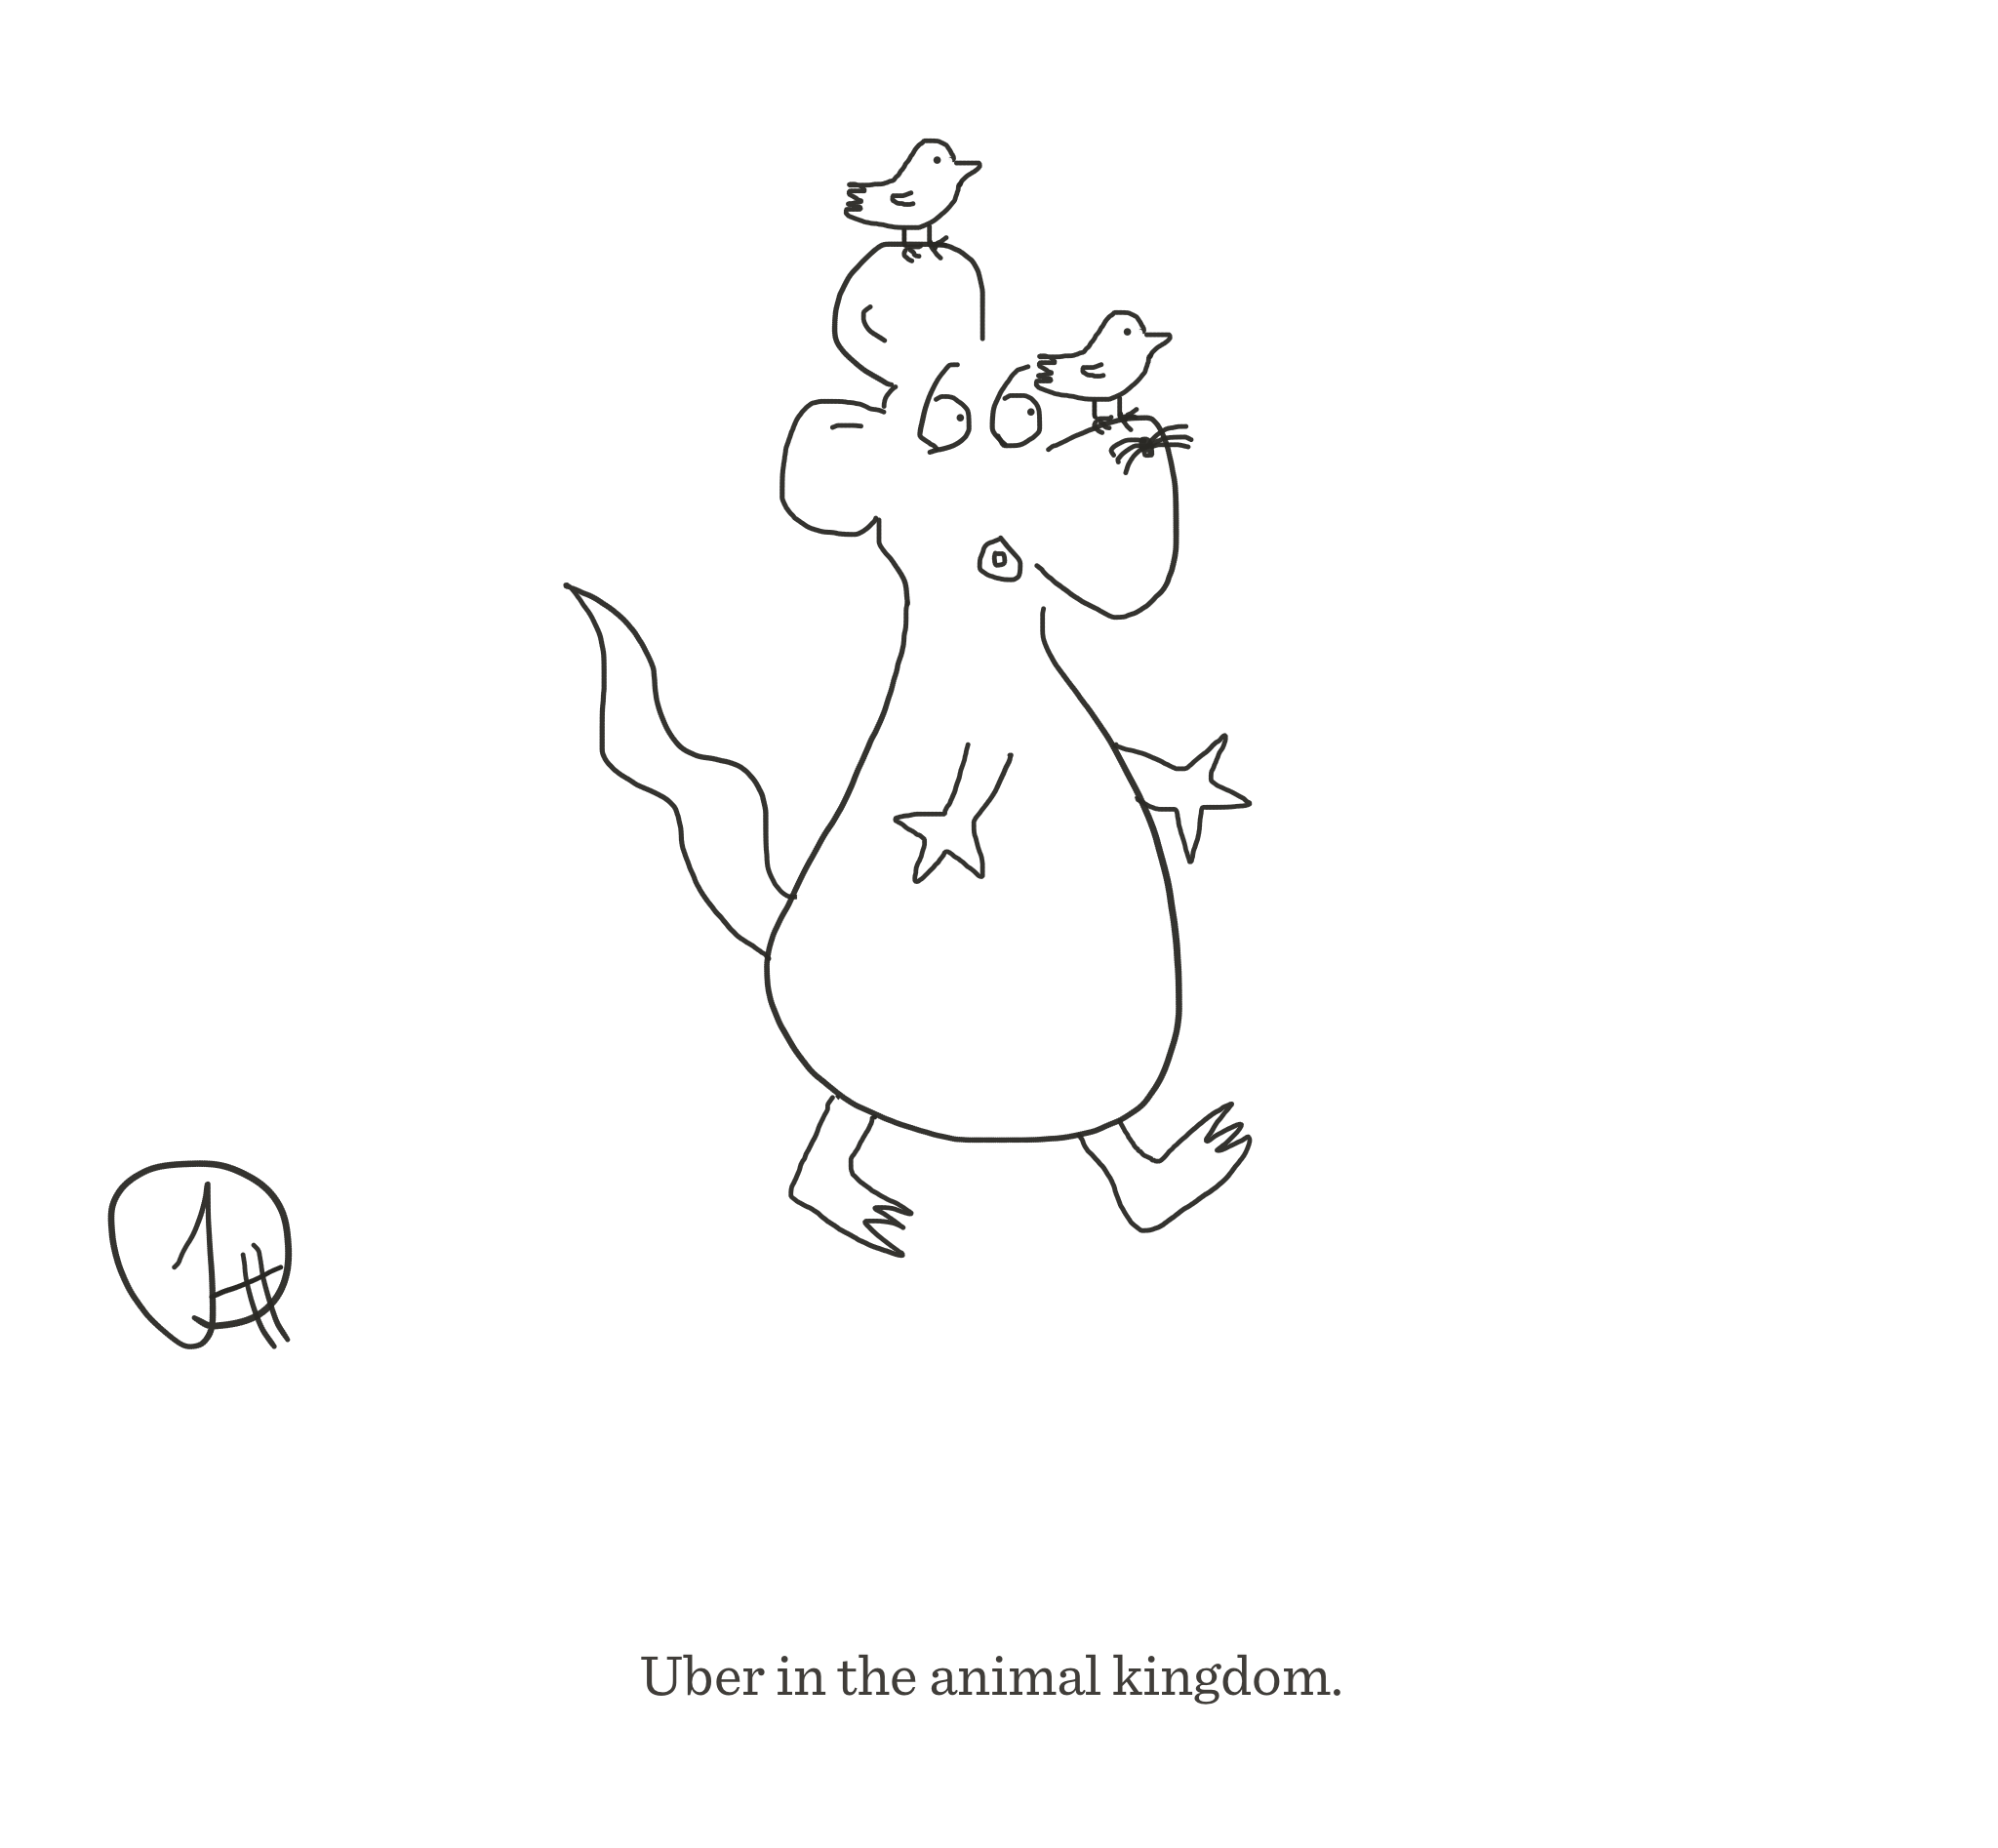 Uber in the animal kingdom, The Happy Rat cartoon